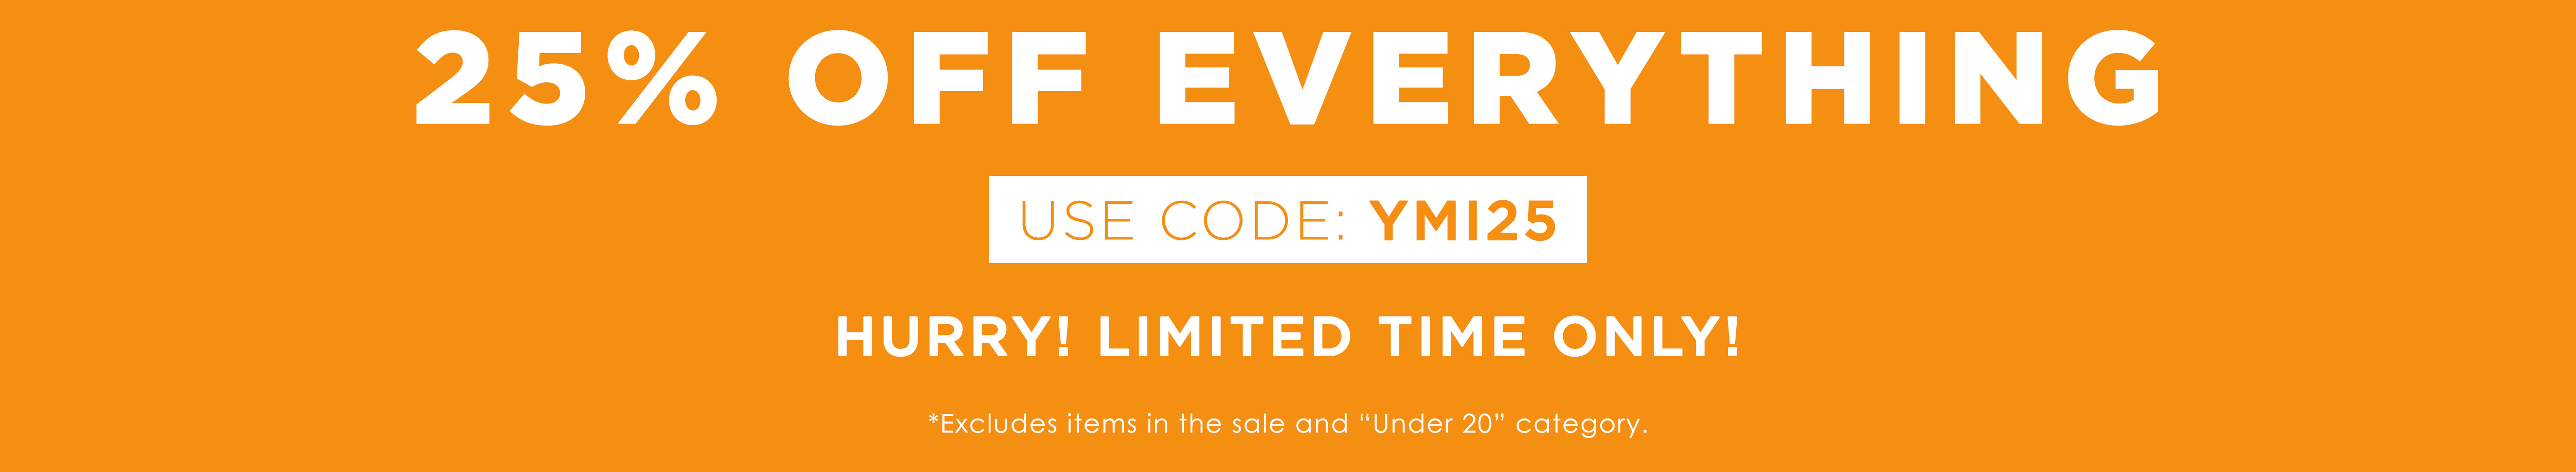 Free YMI bag when you spend 75 dollars or more. while supplies last. shop now